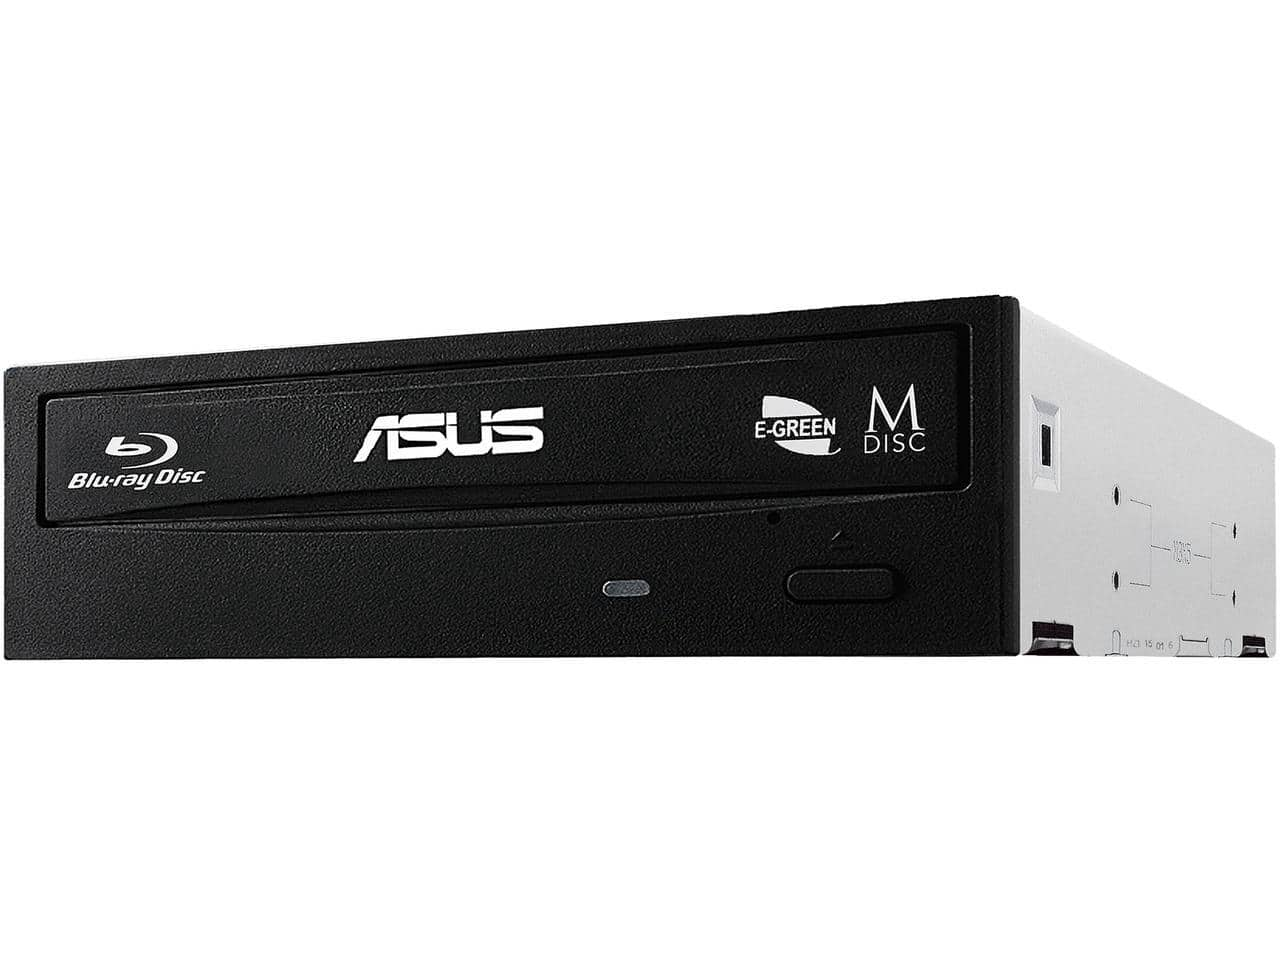 ASUS Black 12X BD-ROM Internal Blu-ray Drive $39.99